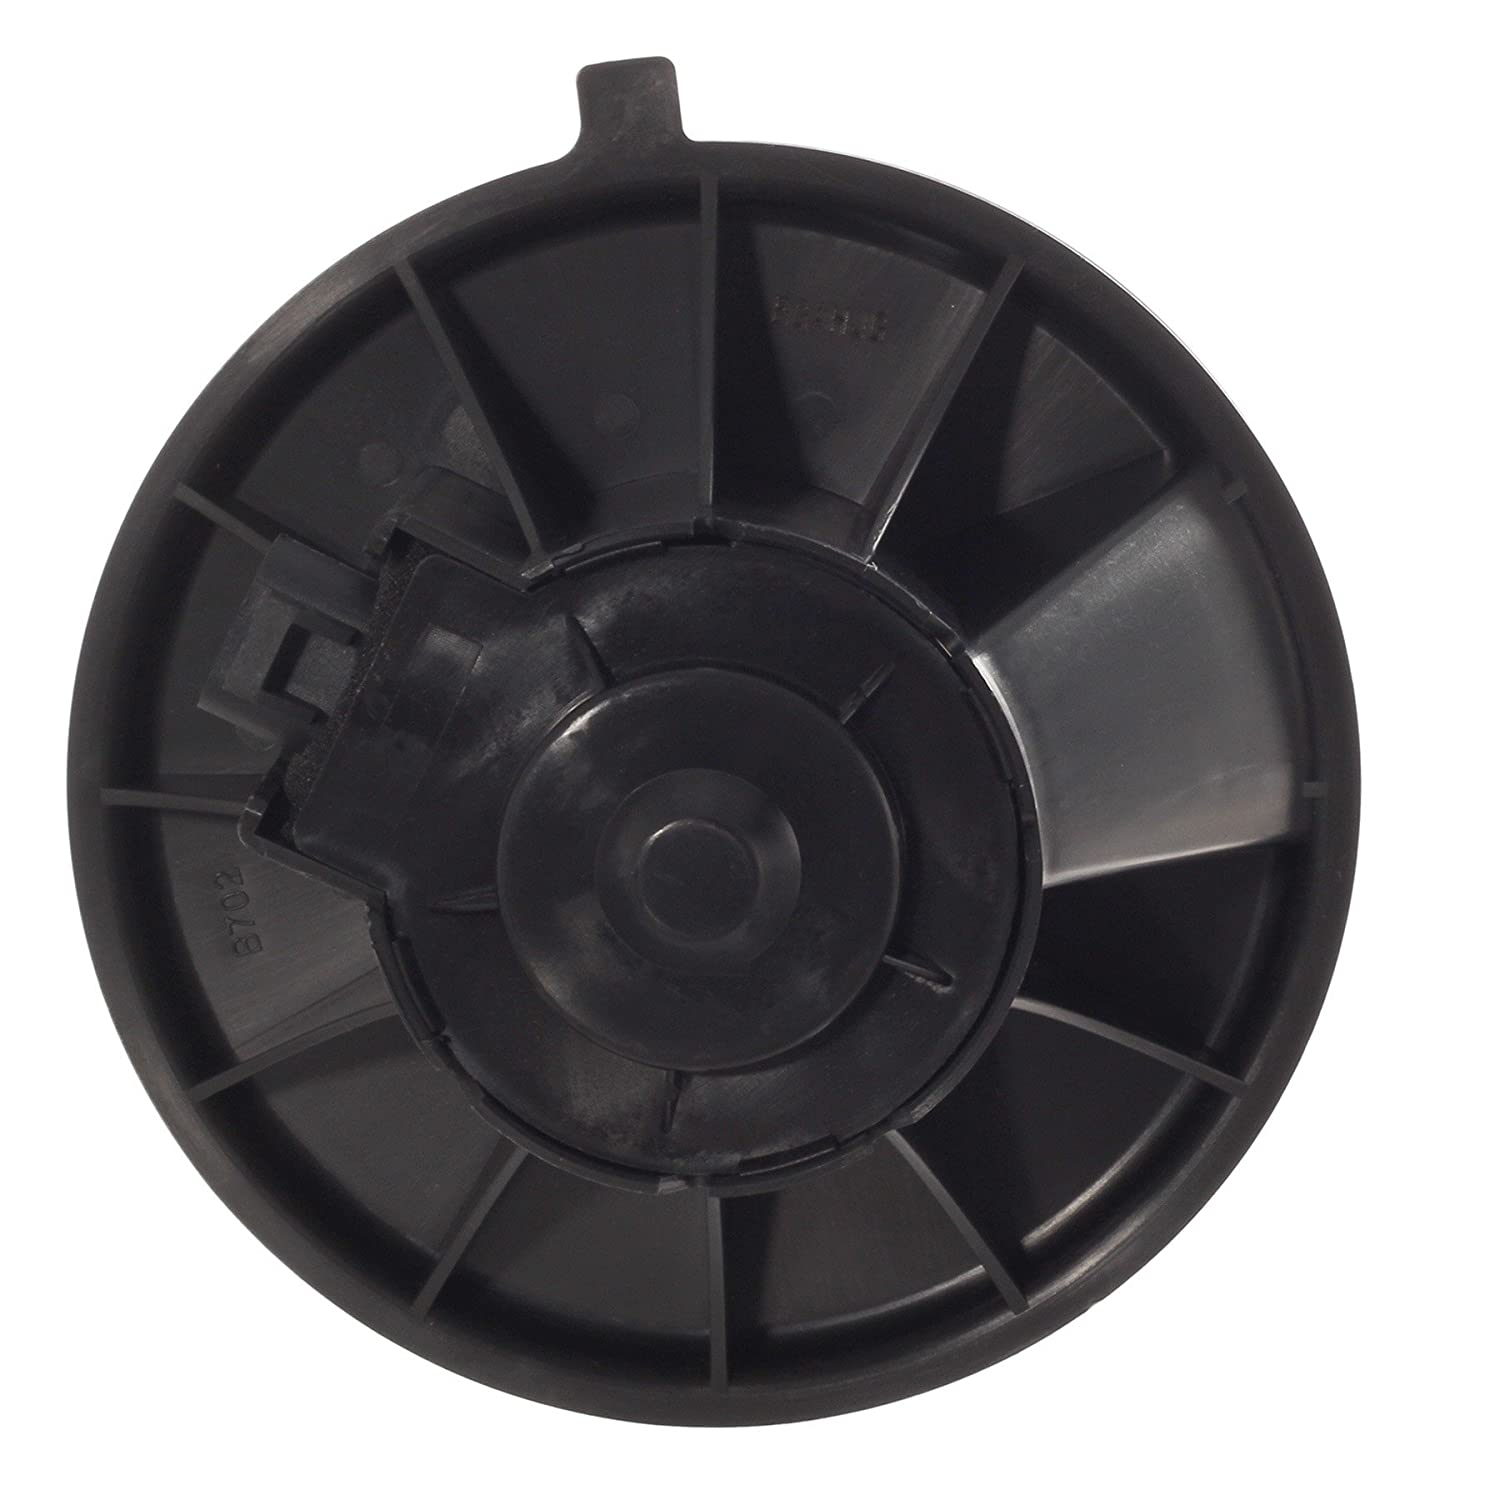 AUTEX HVAC Blower Motor Assembly 52400424 700089 Replacement for Chevrolet Avalanche Suburban 1500 2500,GMC Yukon XL 1500 2500 Sierra 1500 2500 3500 2002-2006